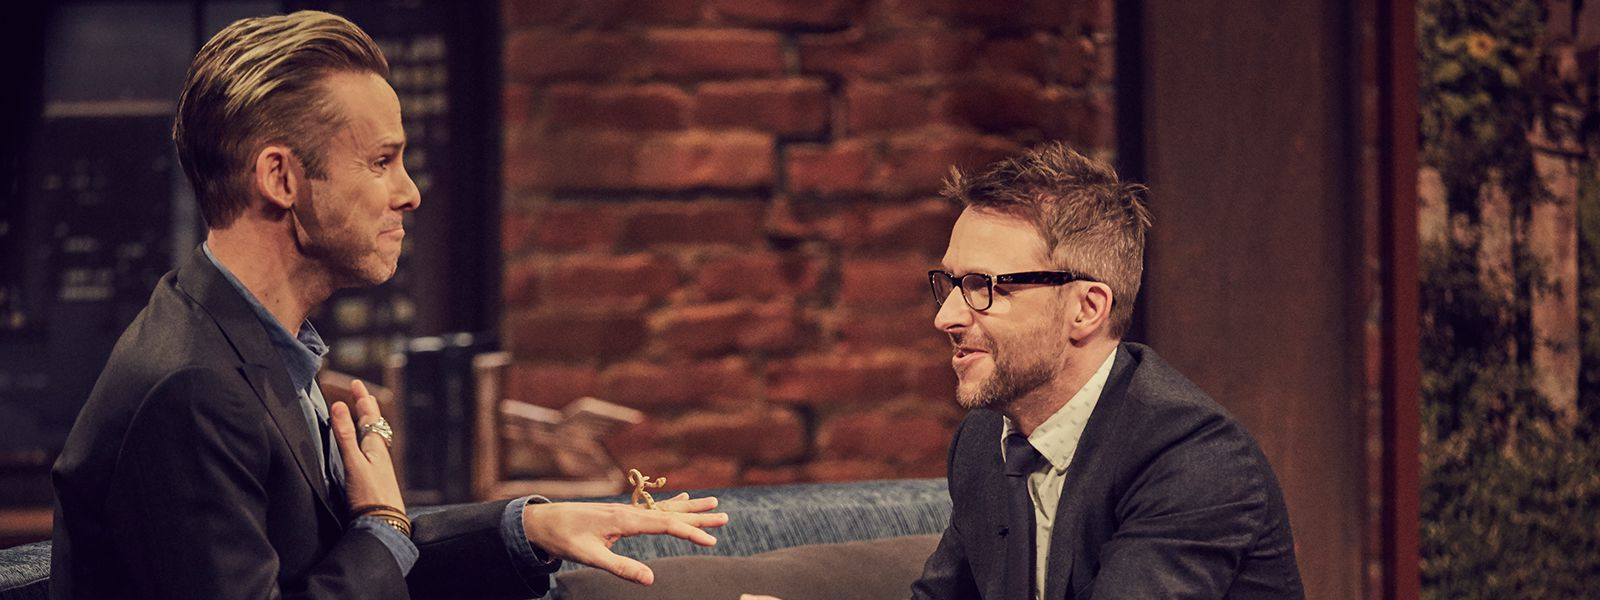 talking-with-chris-hardwick-episode-114-dominic-monaghan-chris-hardwick-800×600